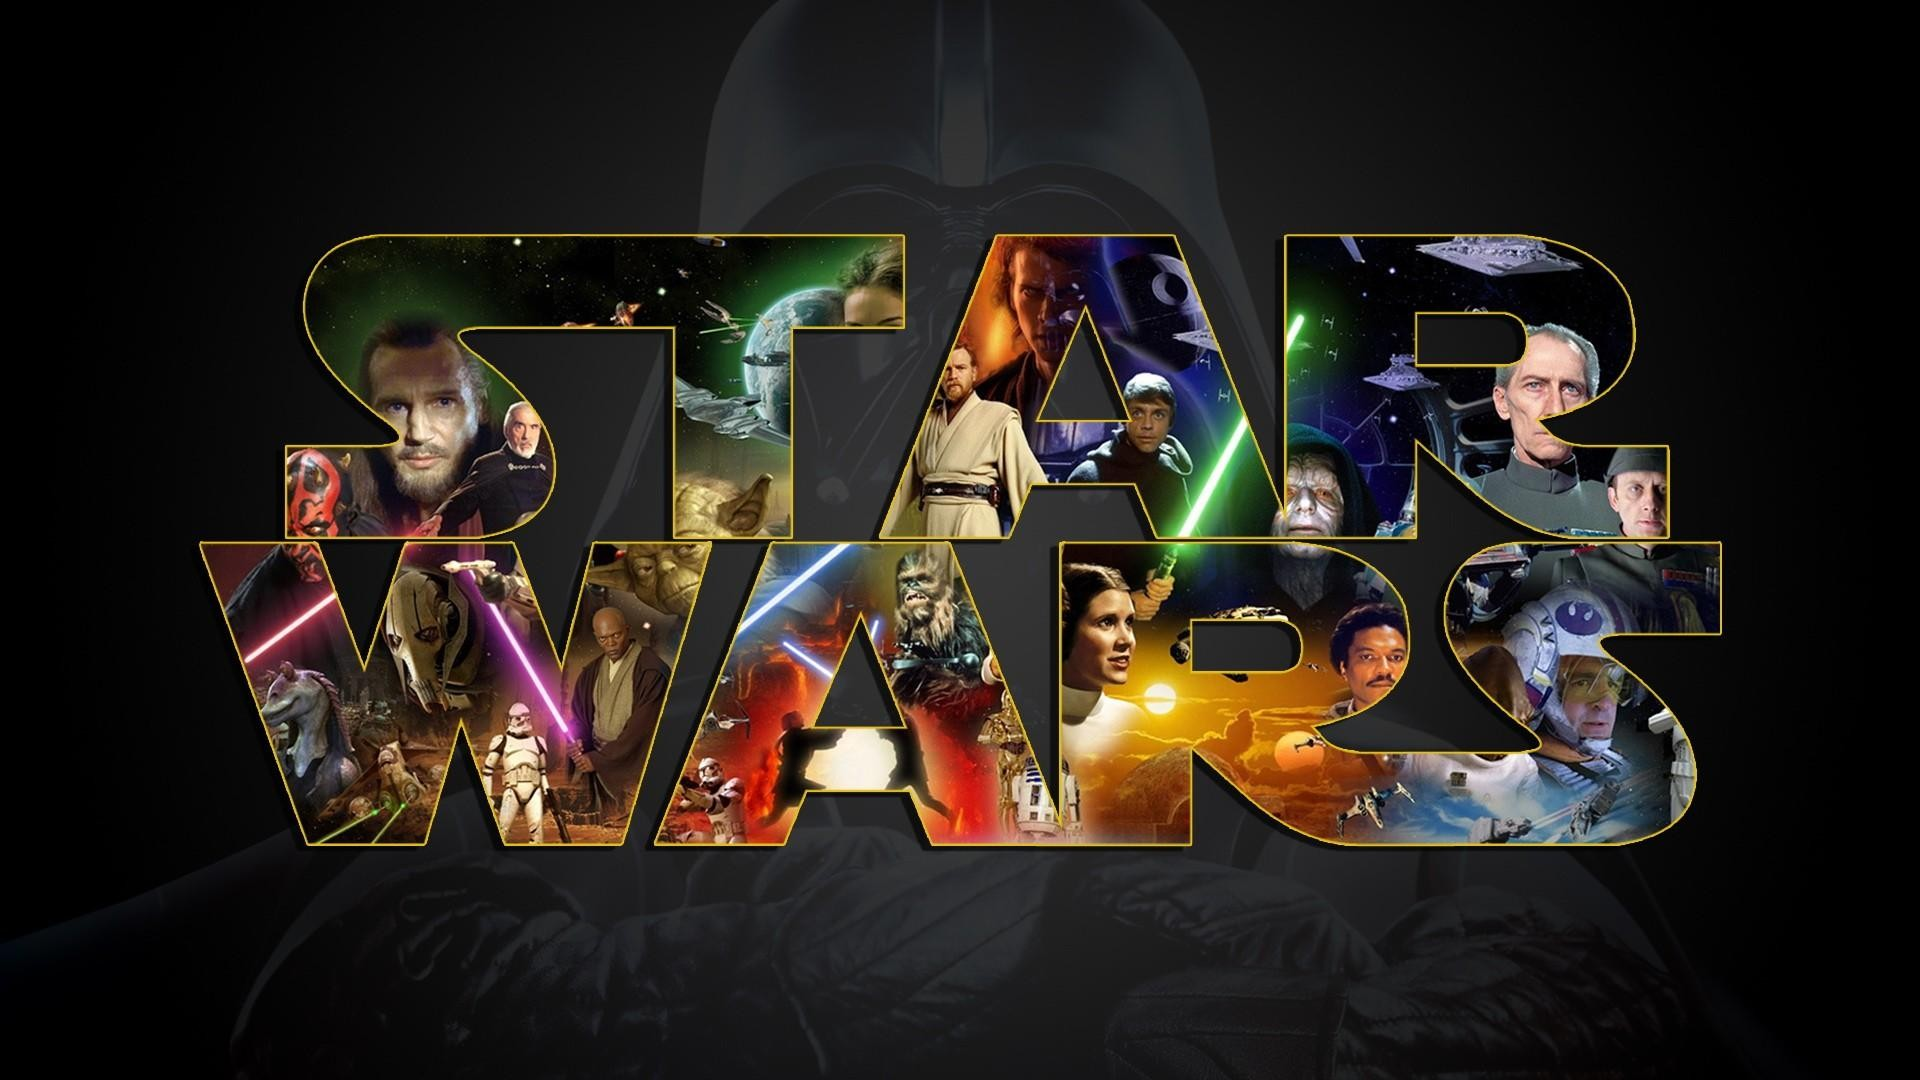 Star Wars All Episodes Background , HD Wallpaper & Backgrounds